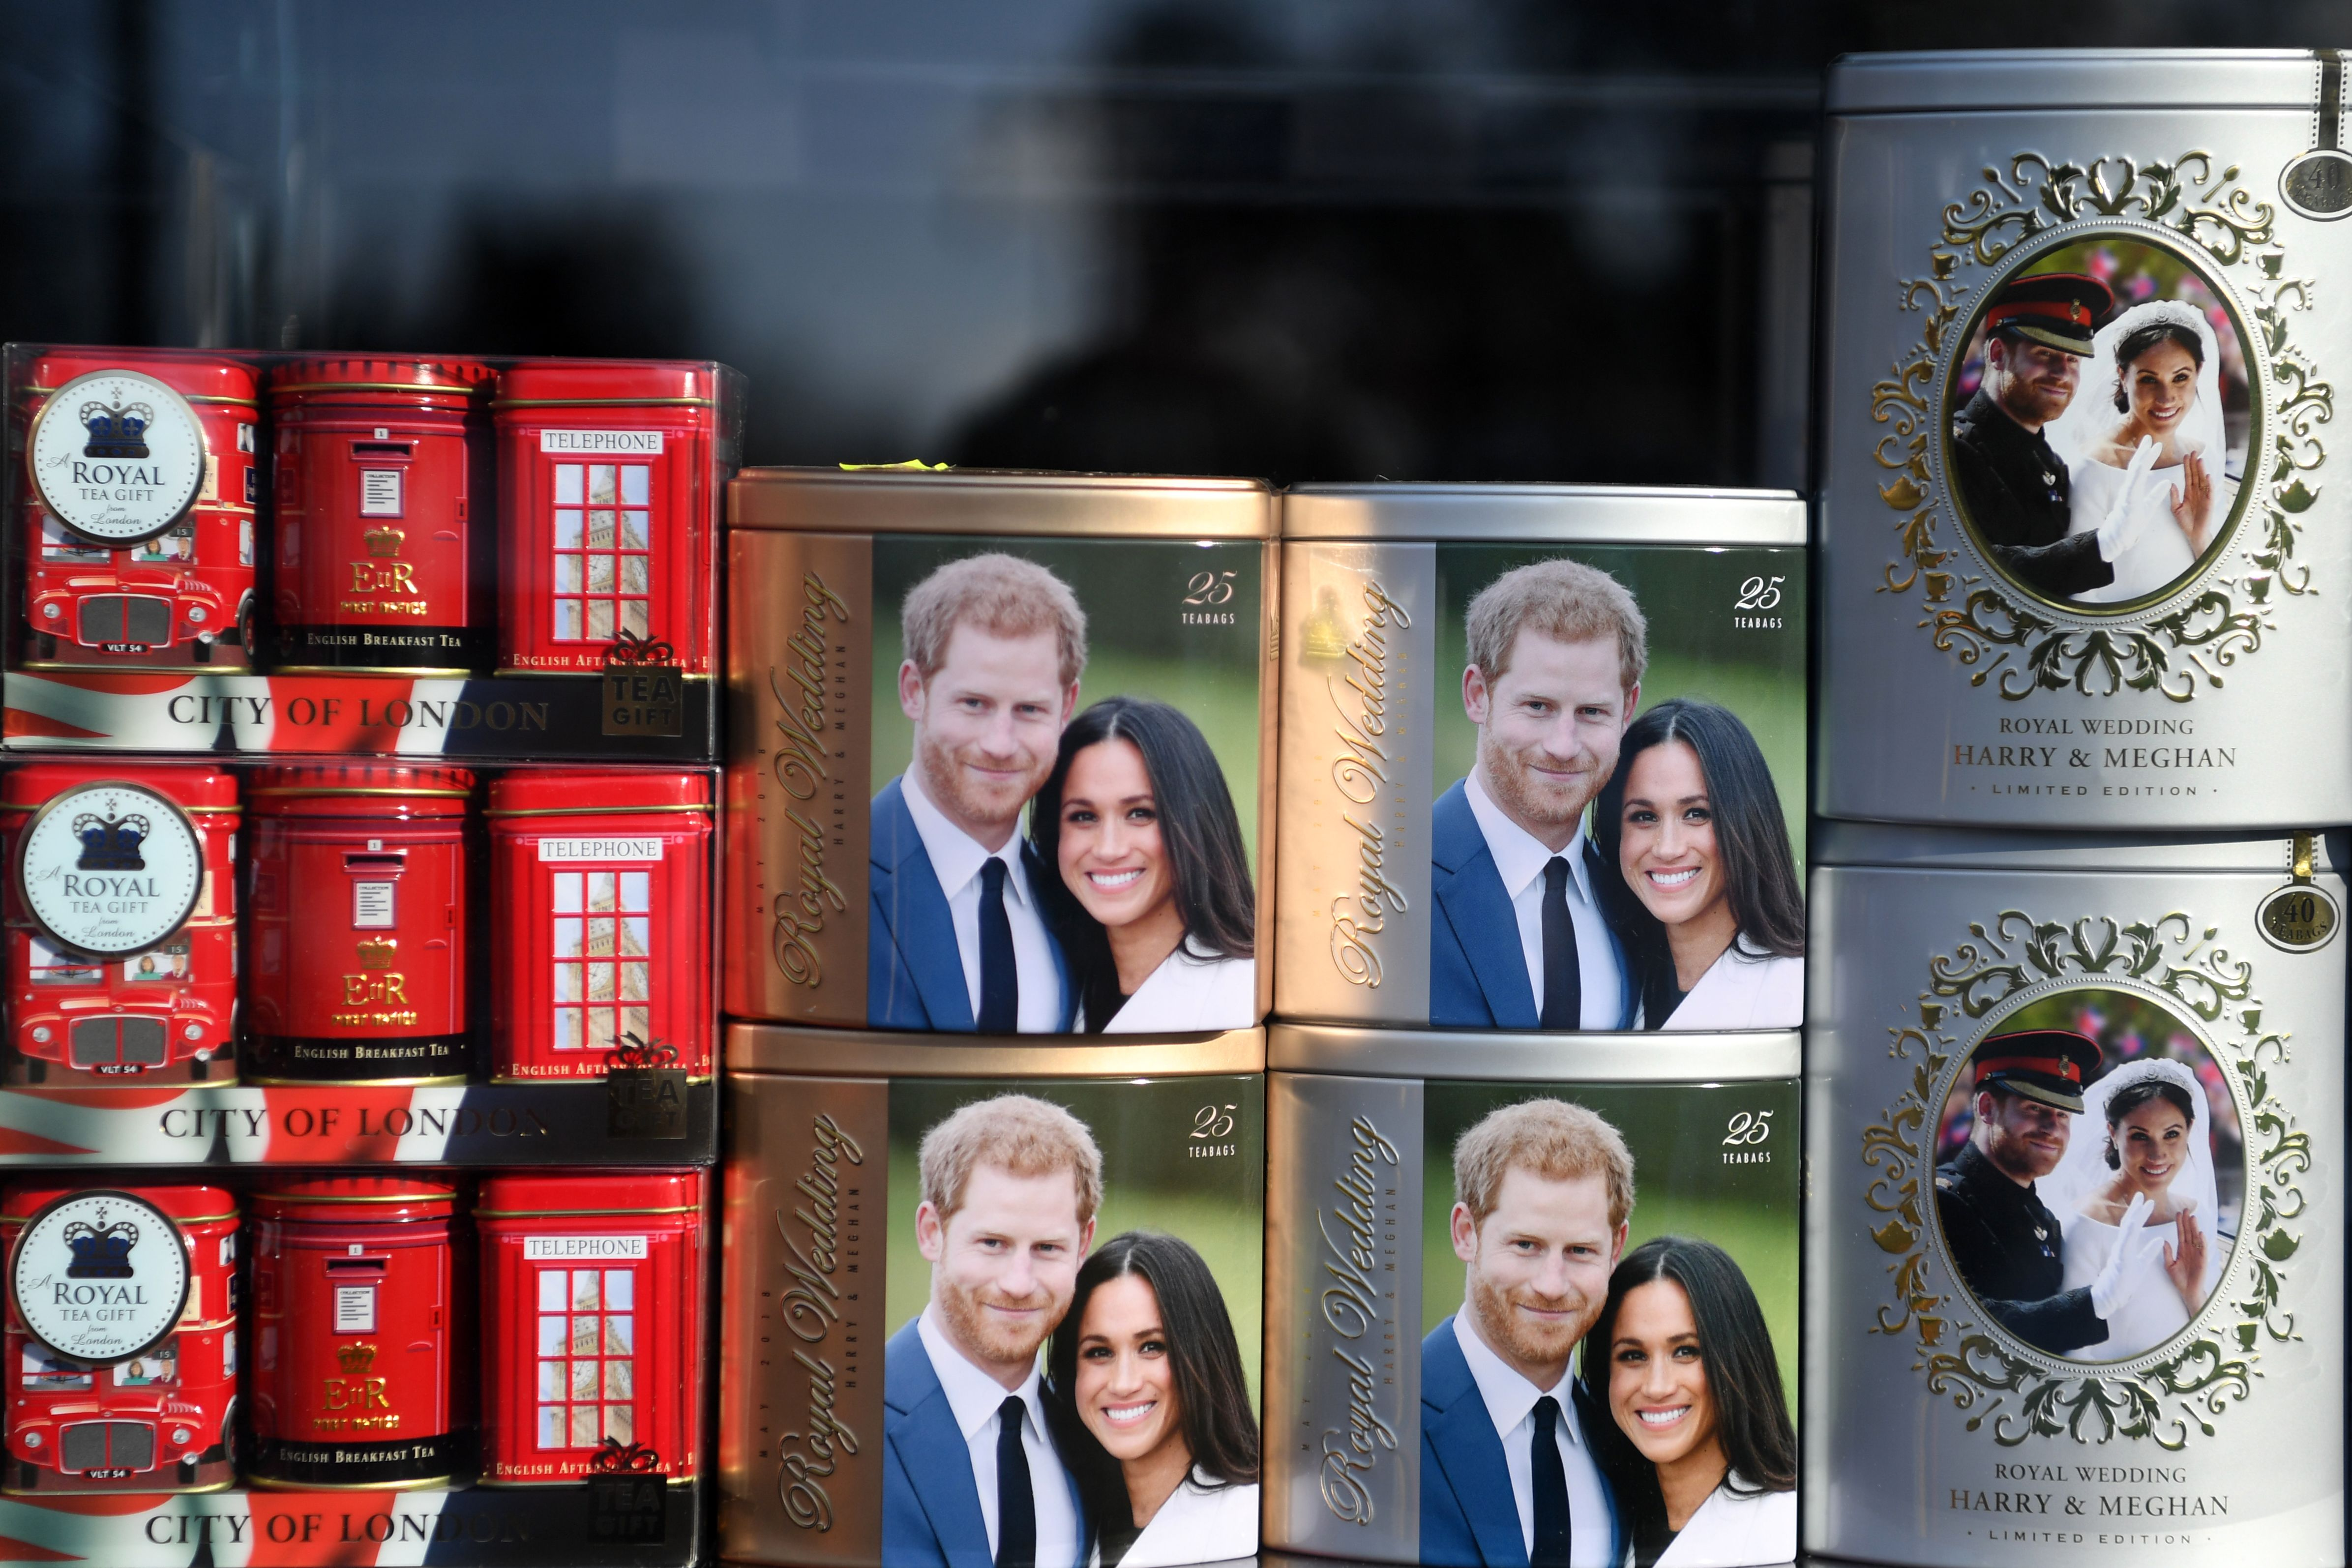 Royal memorabilia featuring Britain's Prince Harry, Duke of Sussex, and Meghan, Duchess of Sussex is displayed in a souvenir shop in Windsor, west of London on January 9, 2020. - Britain's Prince Harry and his wife Meghan stunned the British monarchy on Wednesday by quitting as front-line members -- reportedly without first consulting Queen Elizabeth II. In a shock announcement, the couple said they would spend time in North America and rip up long-established relations with the press. Media reports said the Duke and Duchess of Sussex made their bombshell statement without notifying either Harry's grandmother the monarch, or his father Prince Charles. (Photo by DANIEL LEAL-OLIVAS / AFP) (Photo by DANIEL LEAL-OLIVAS/AFP via Getty Images)